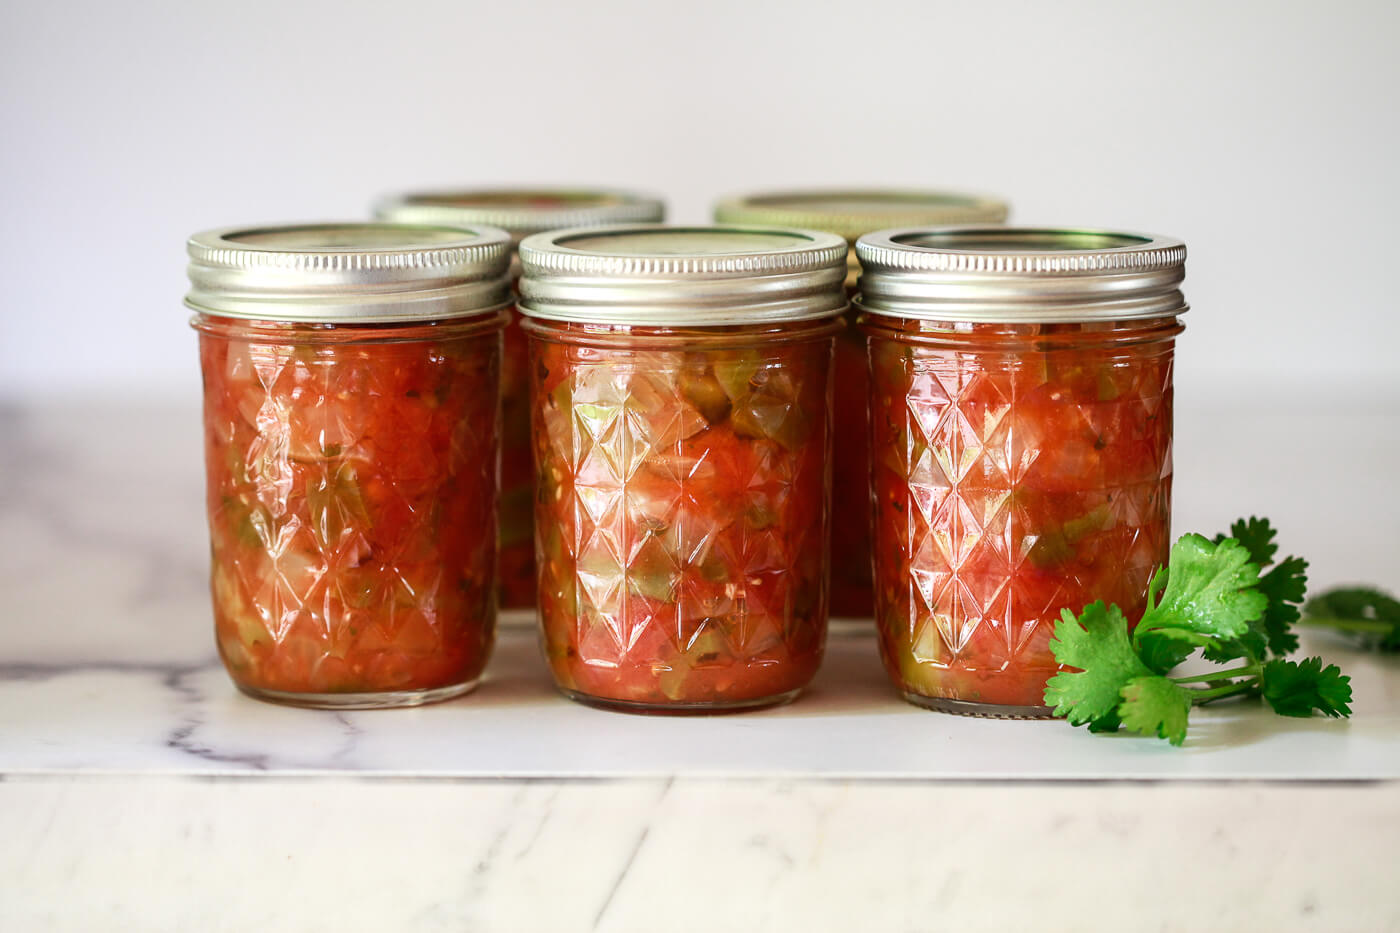 8 oz. Ball jars filled with homemade canned salsa on a marble counter.